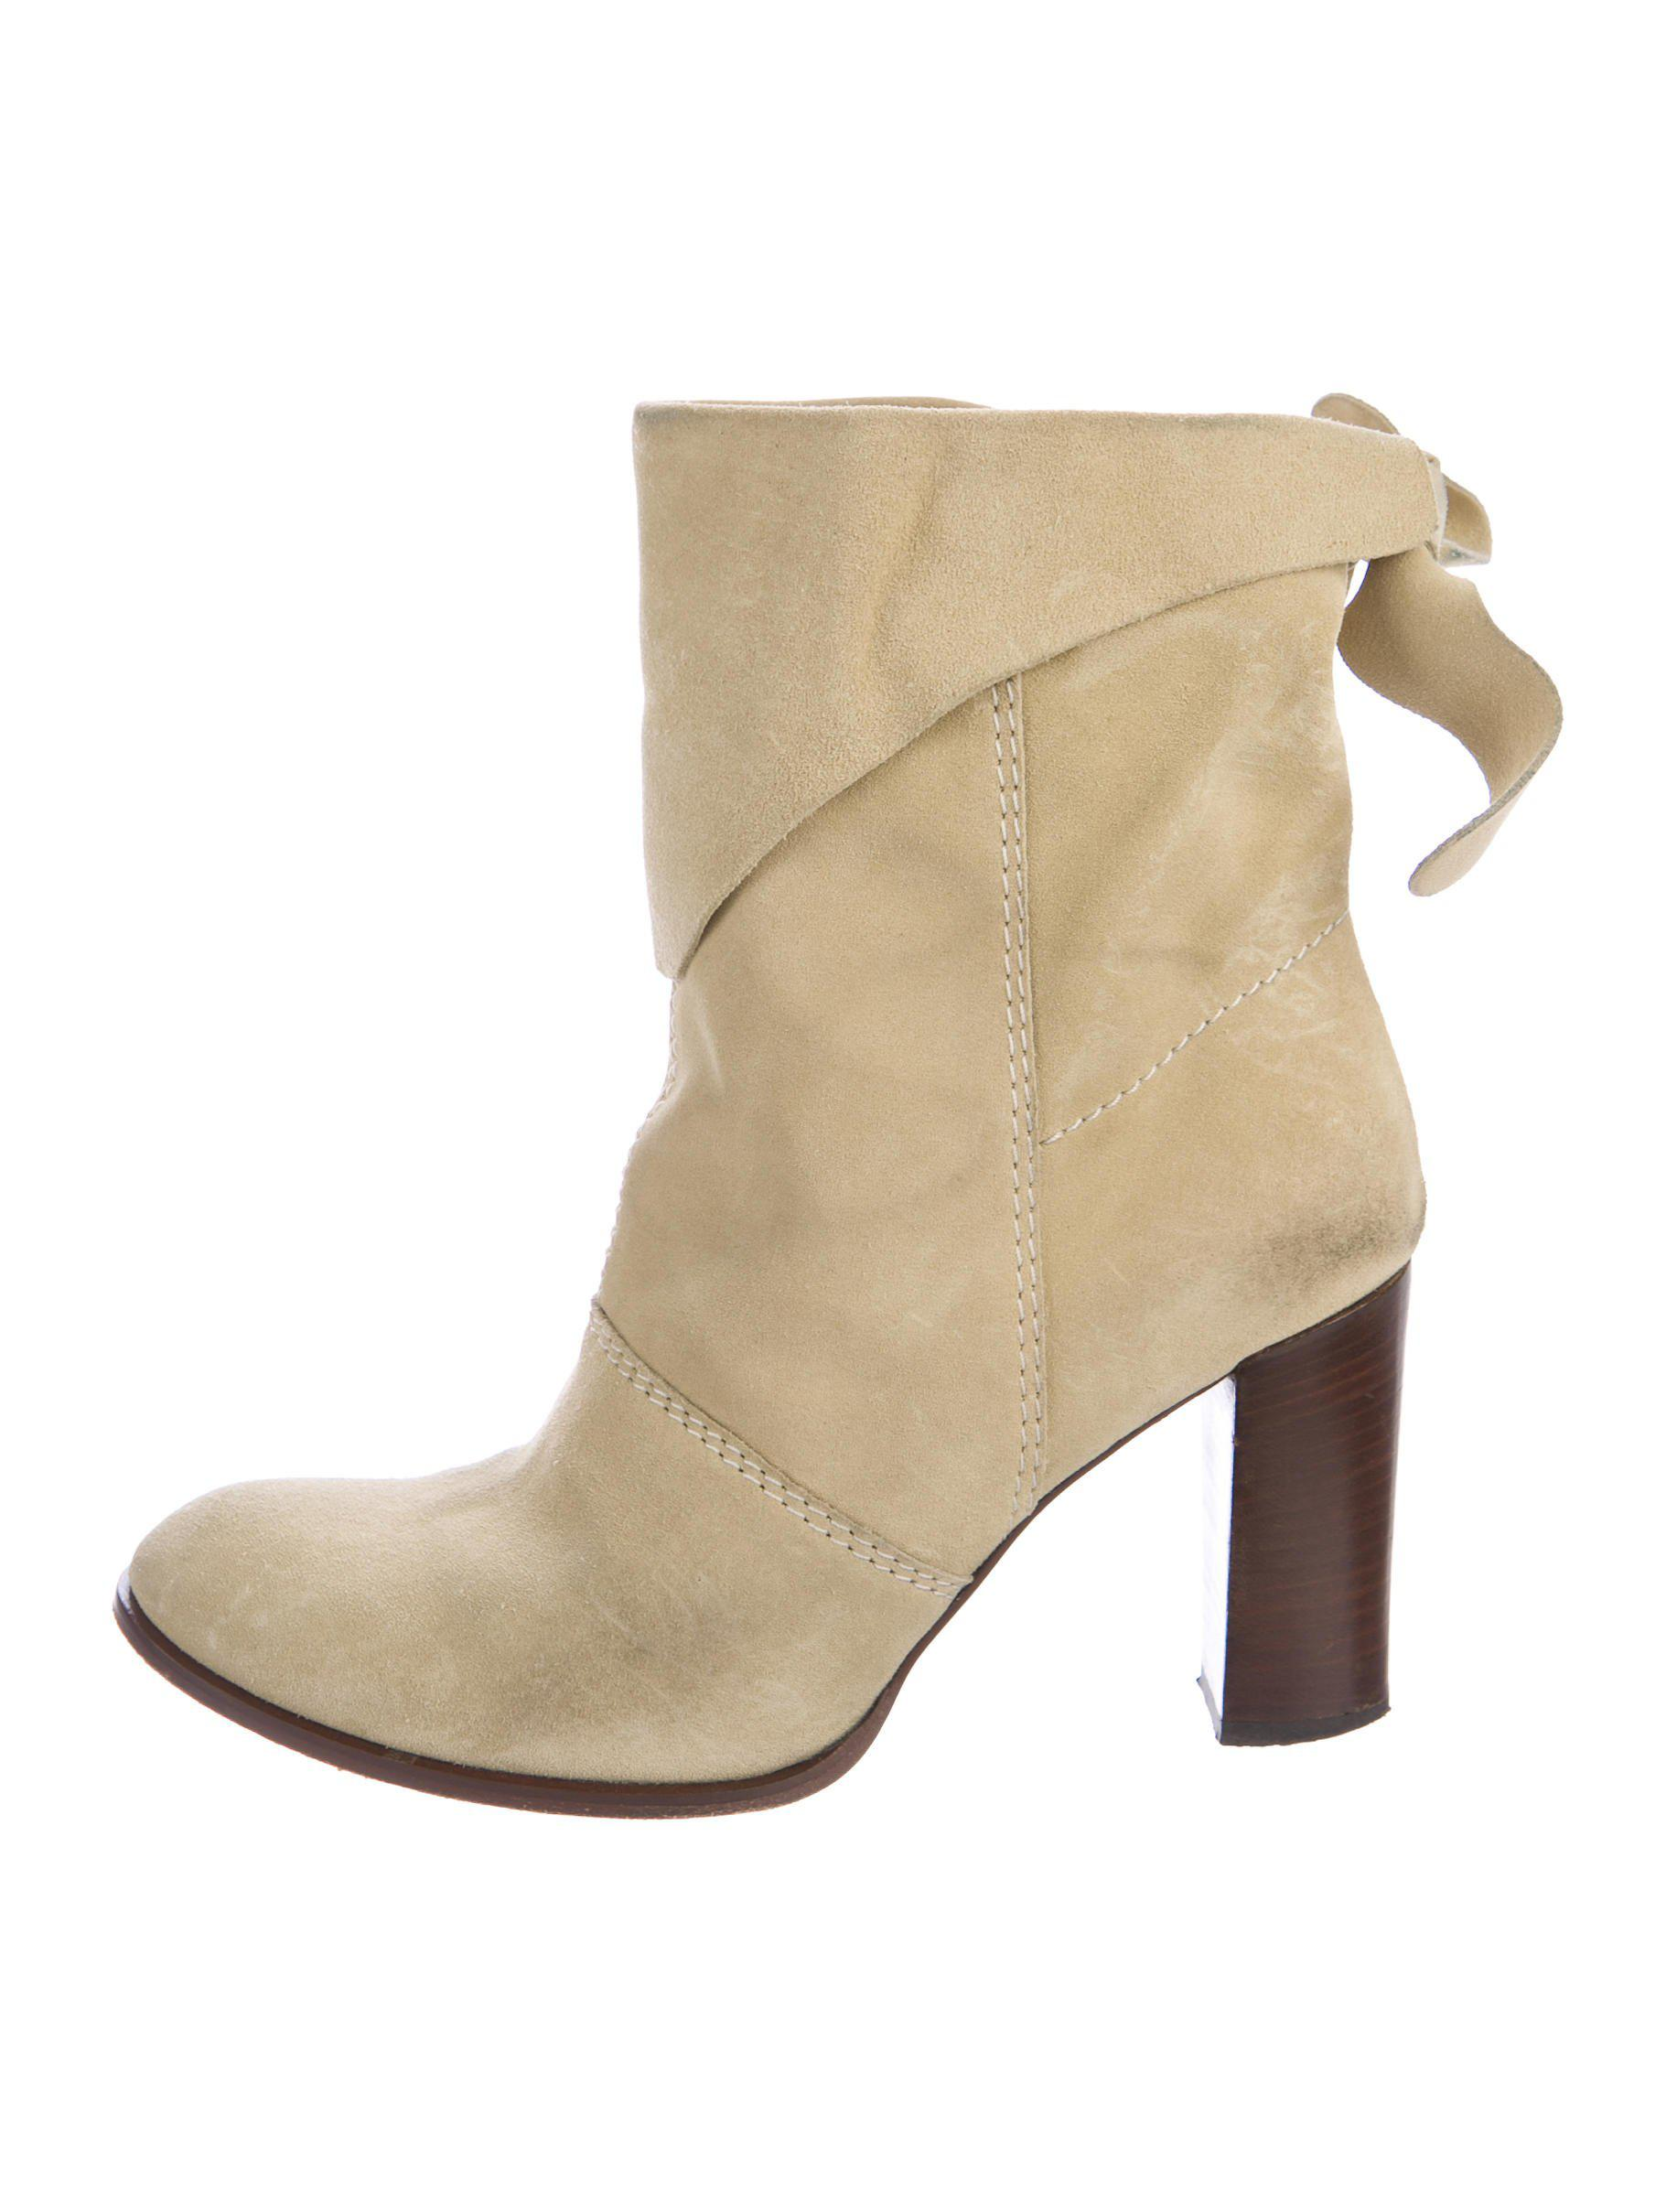 discount low shipping fee Marc Jacobs Suede Round-Toe Booties discounts online cheap Inexpensive buy cheap low shipping DqR0DJz3g